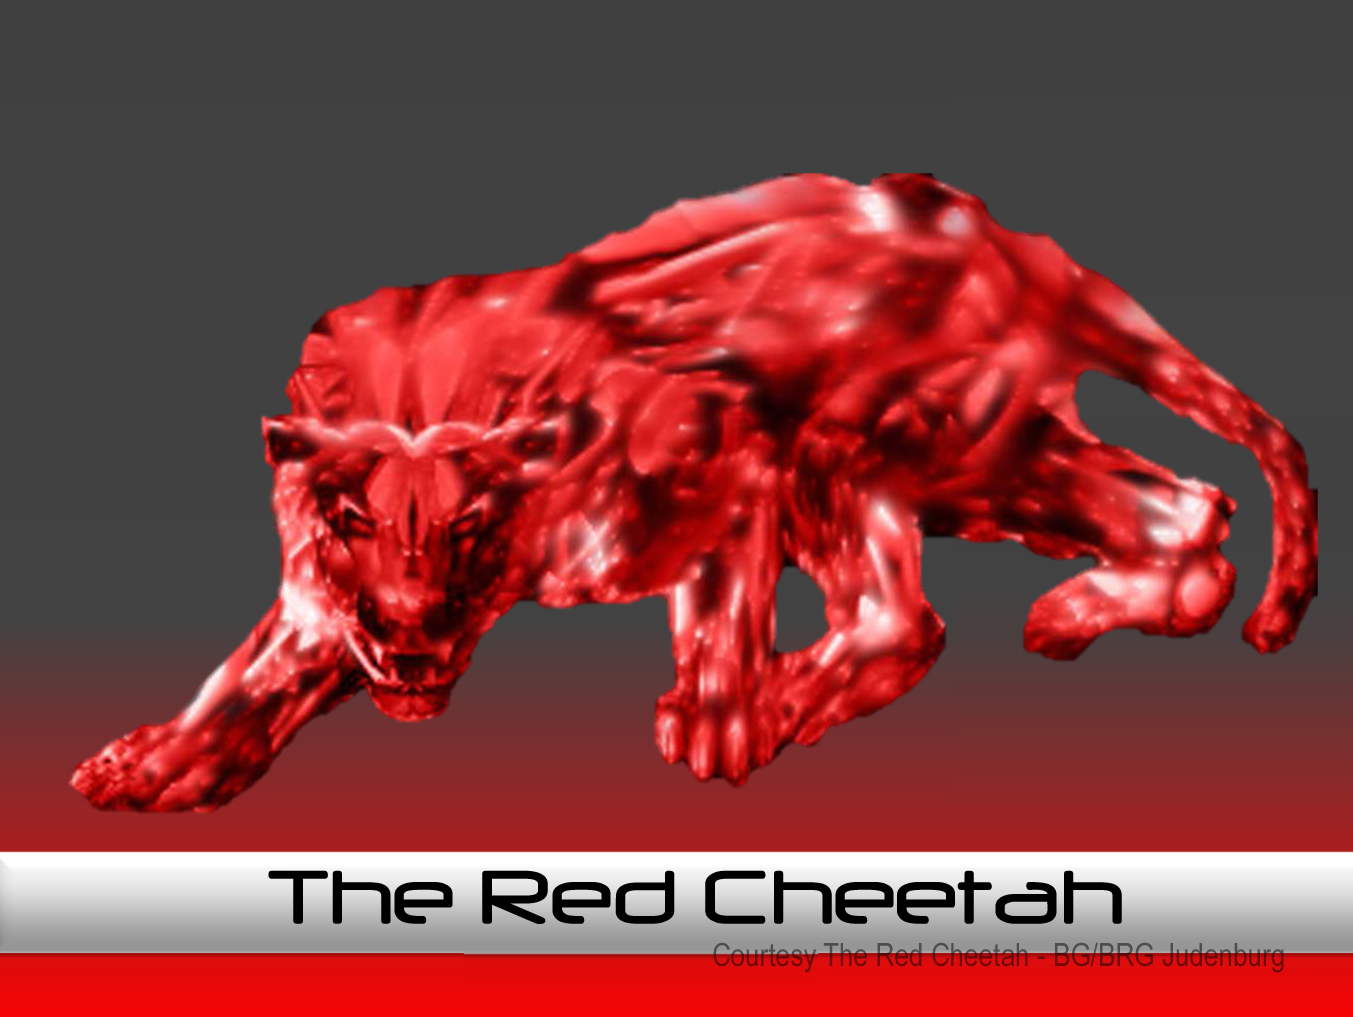 The Red Cheetah